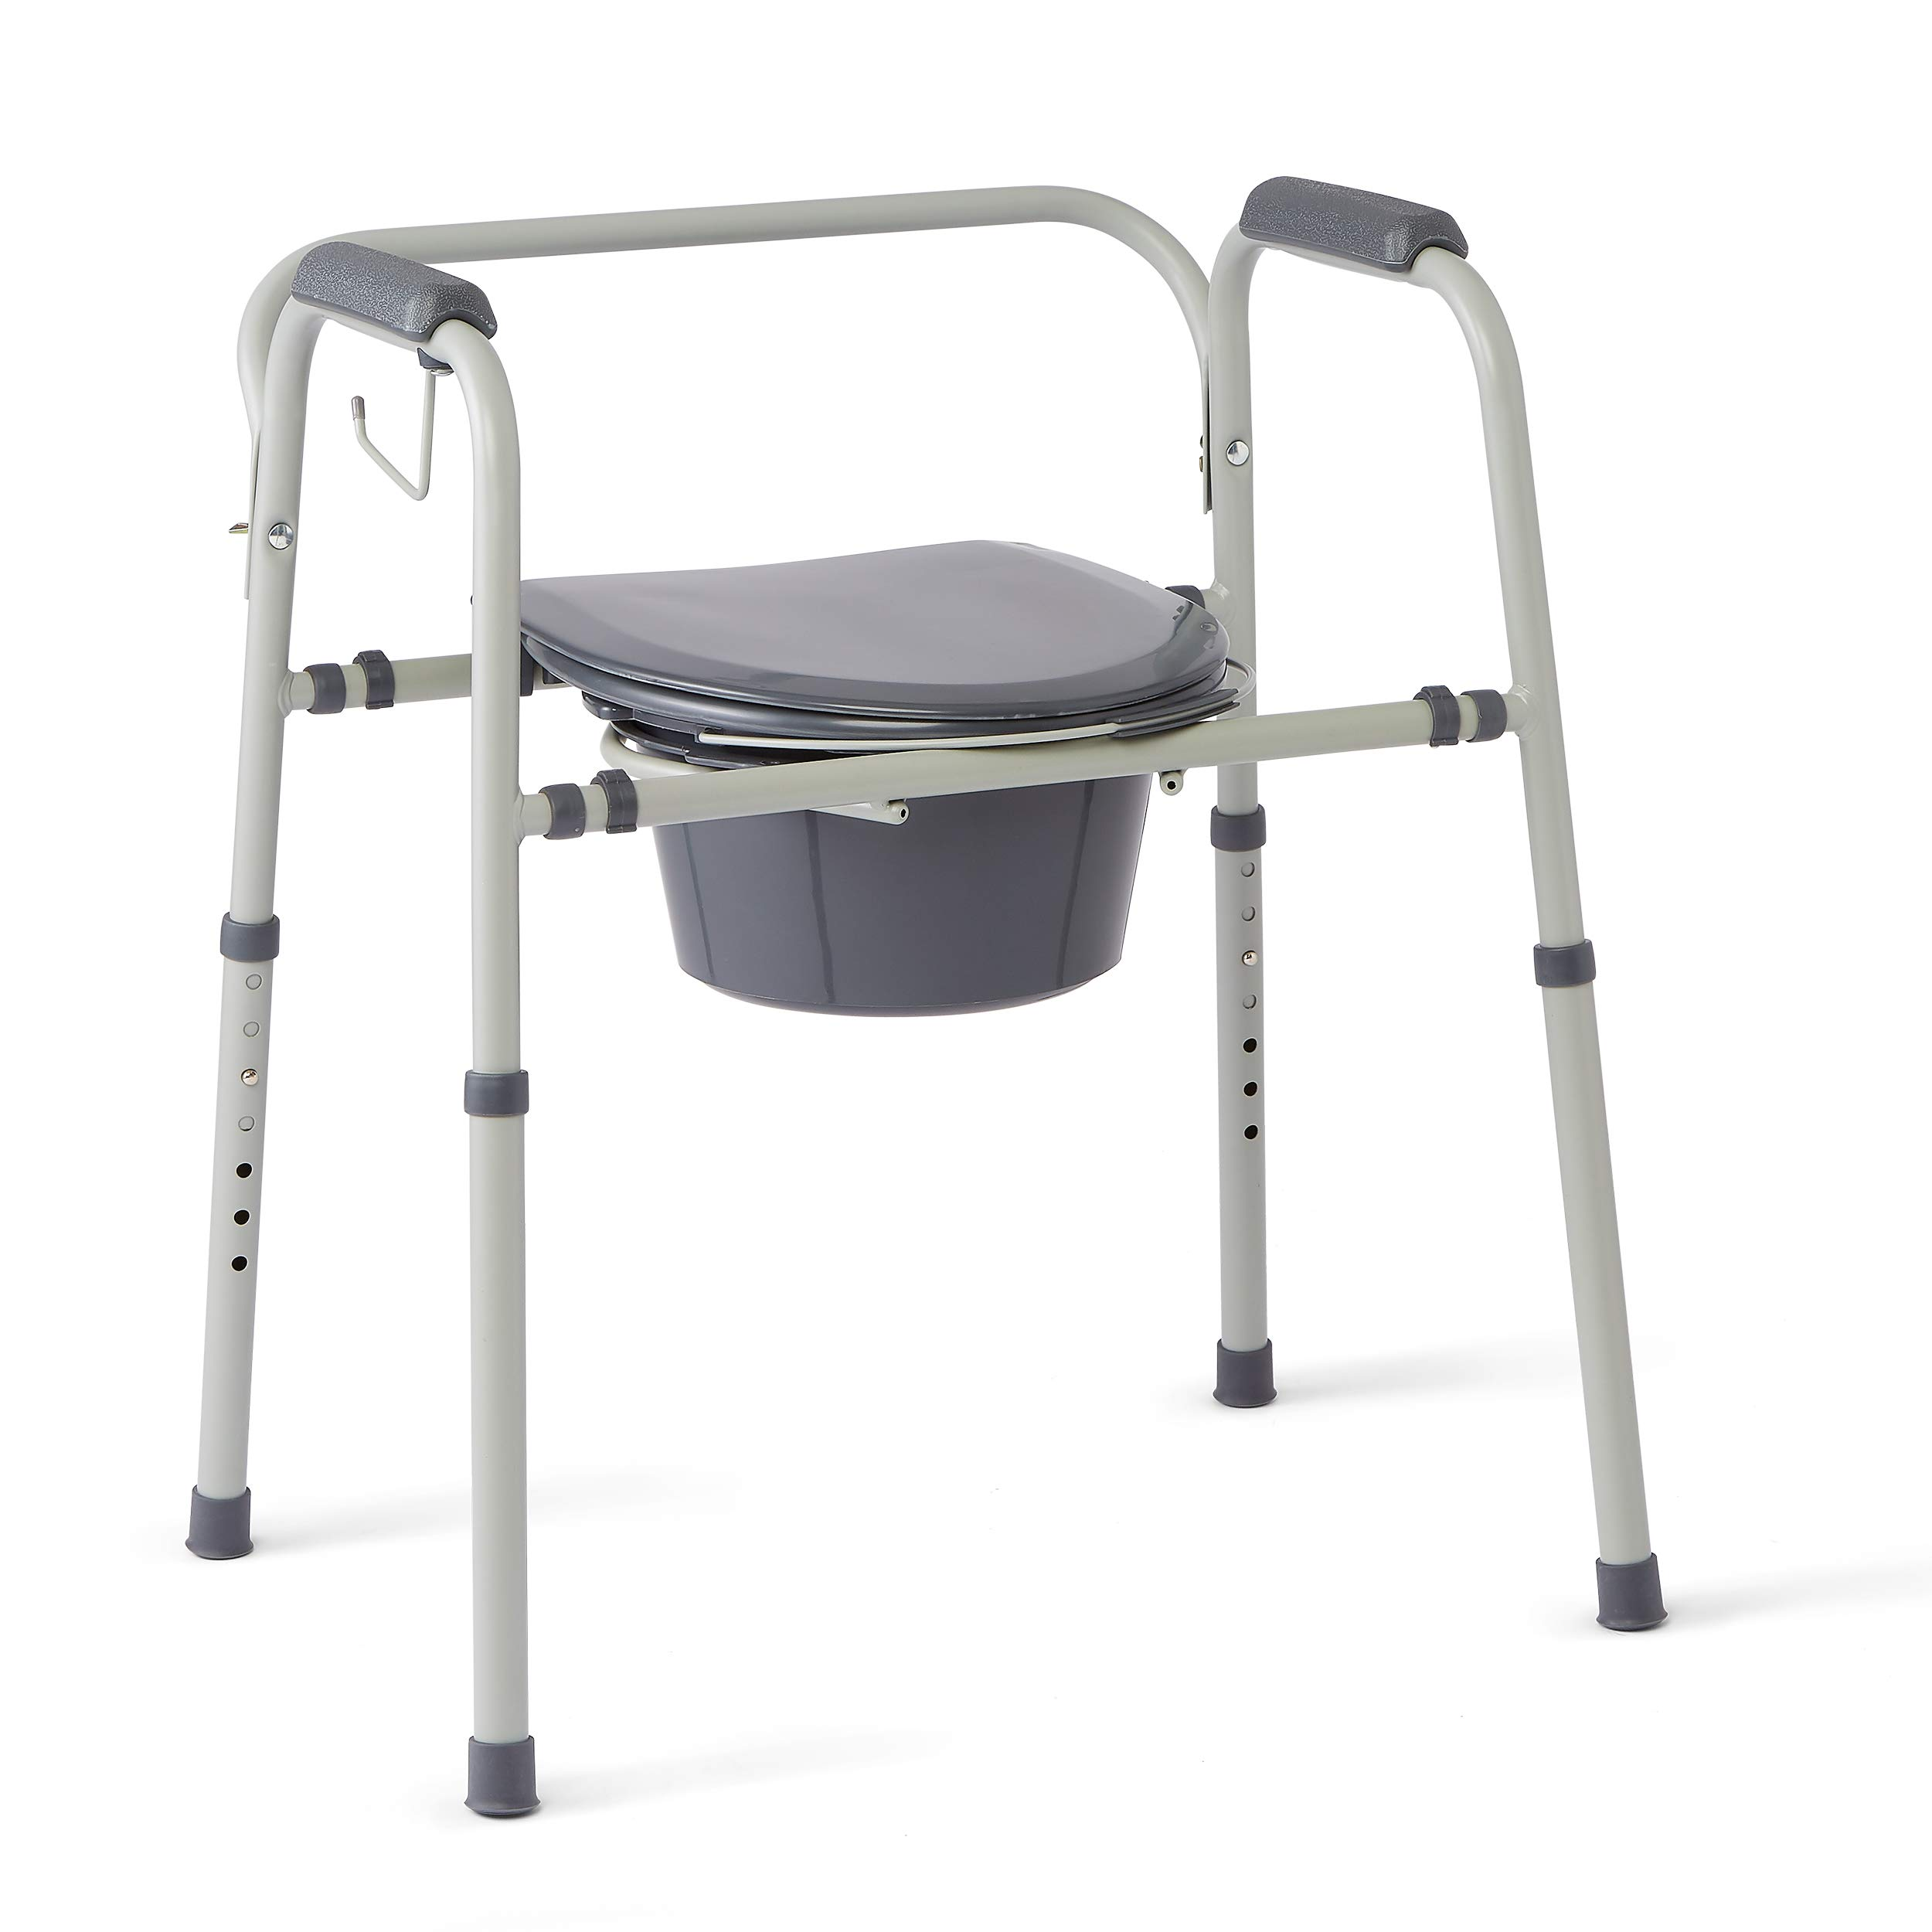 Medline Steel 3-in-1 Bedside Commode, Portable Toilet with Microban Antimicrobial Protection, Can be Used as Raised Toilet Seat Riser, Gray by Medline